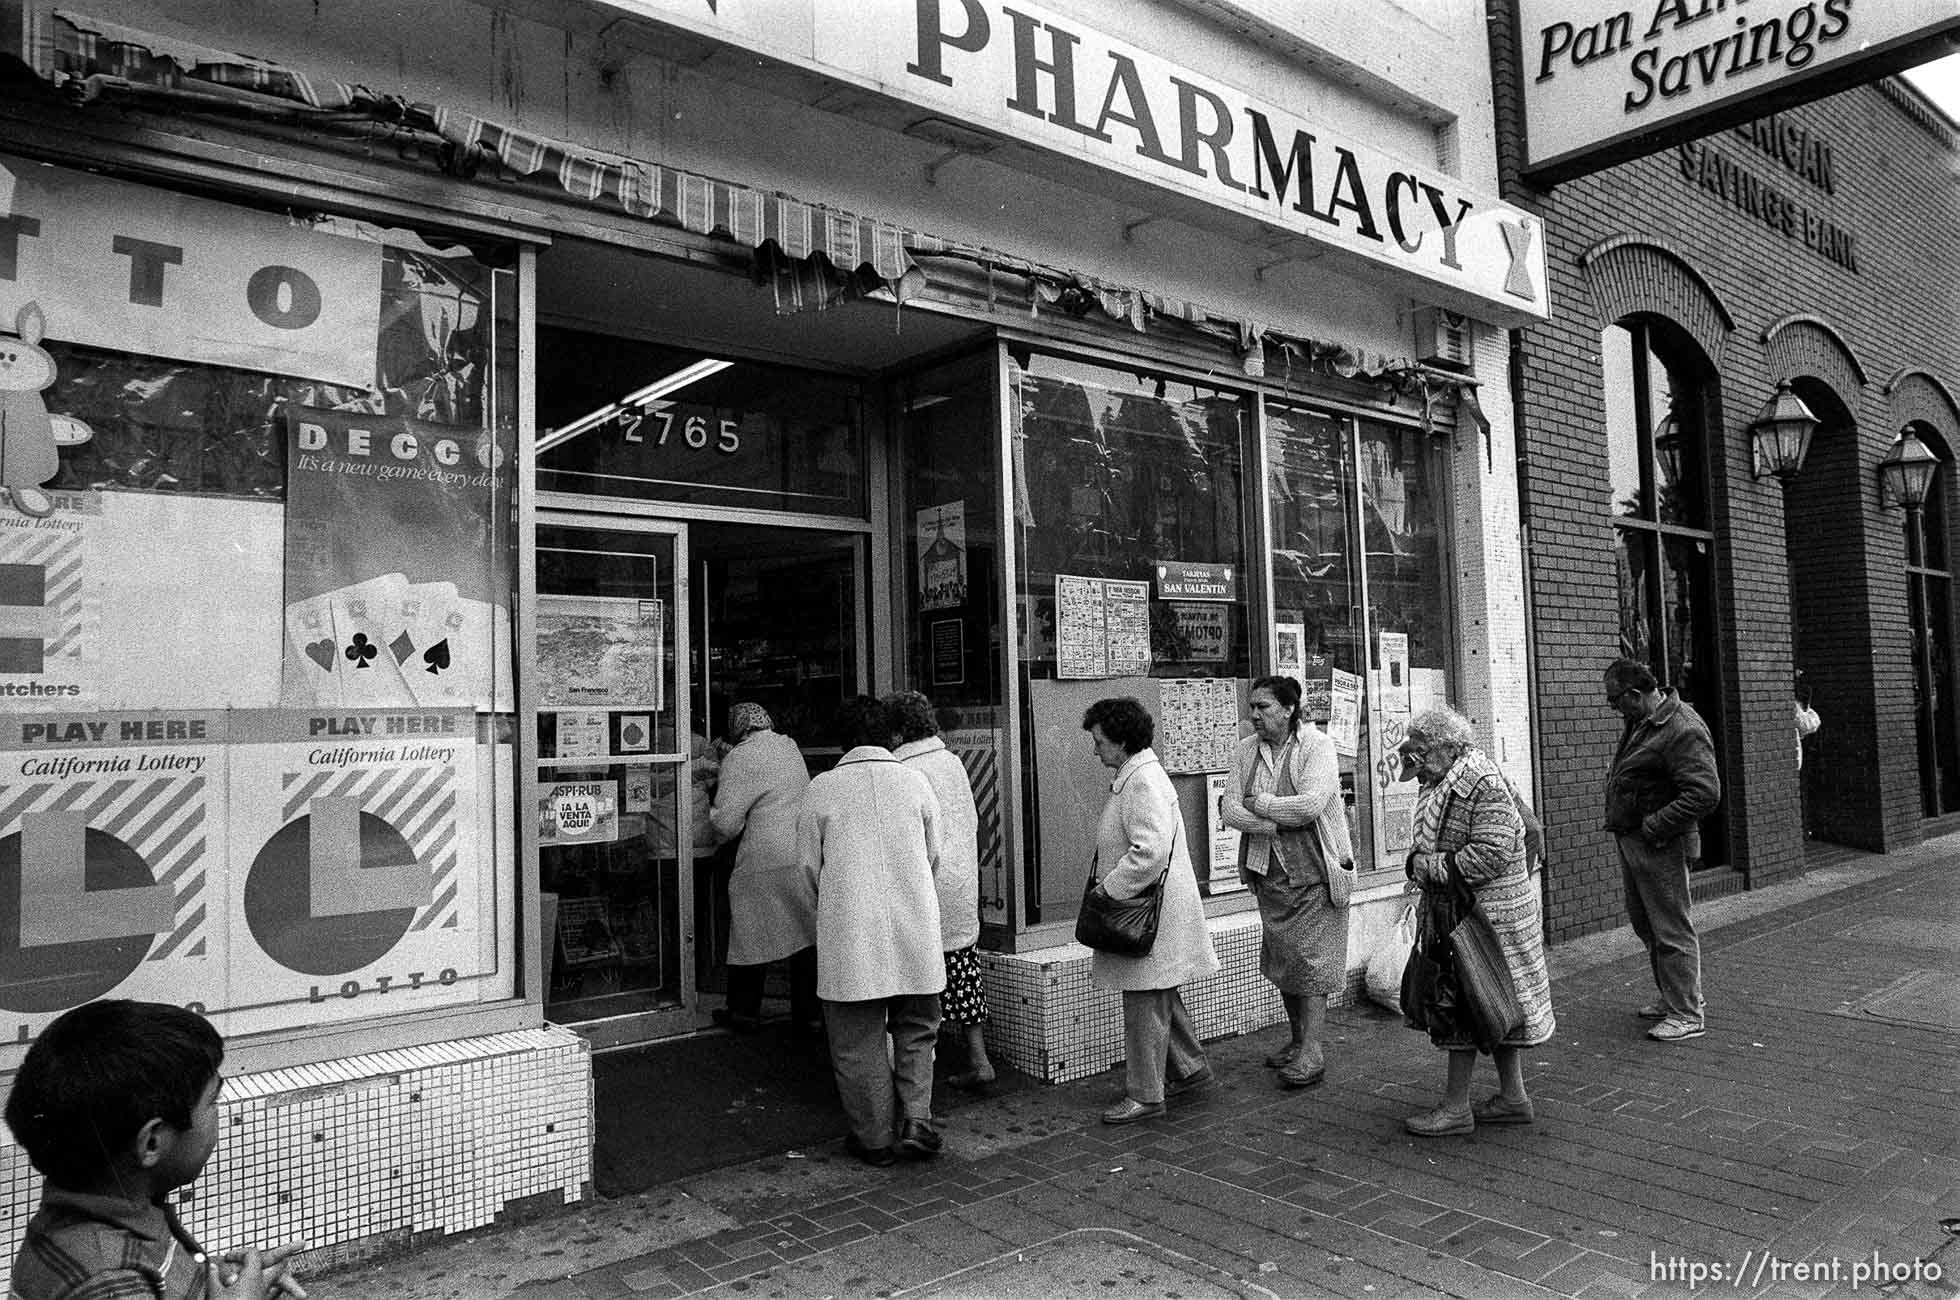 People lined up to get into pharmacy